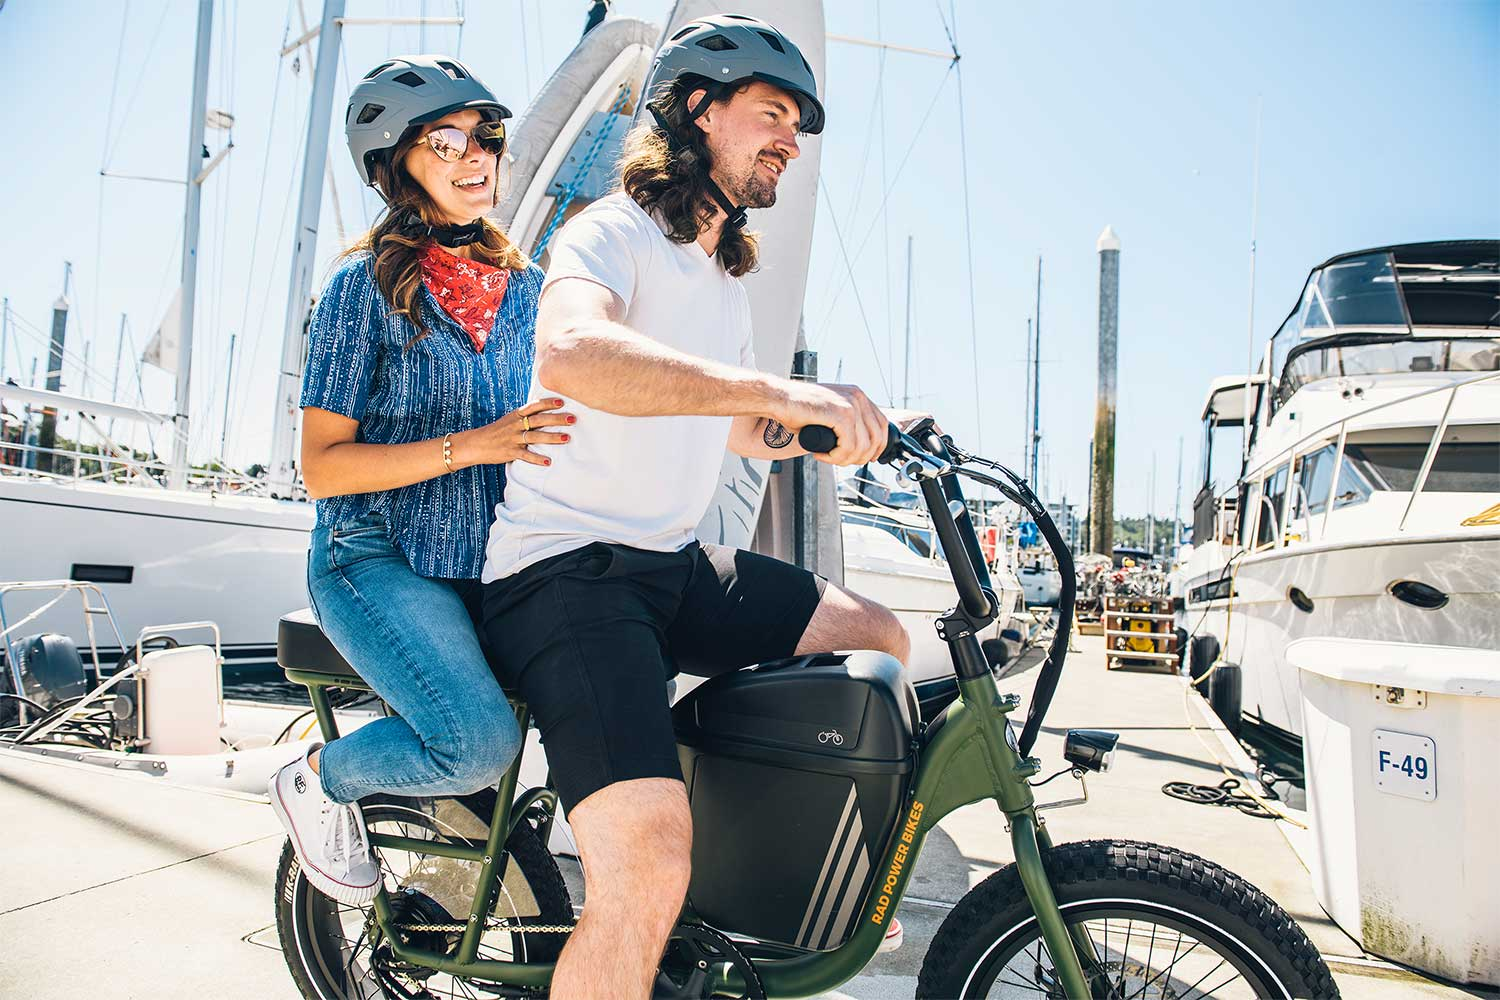 Couple riding RadRunner e-bike through marina